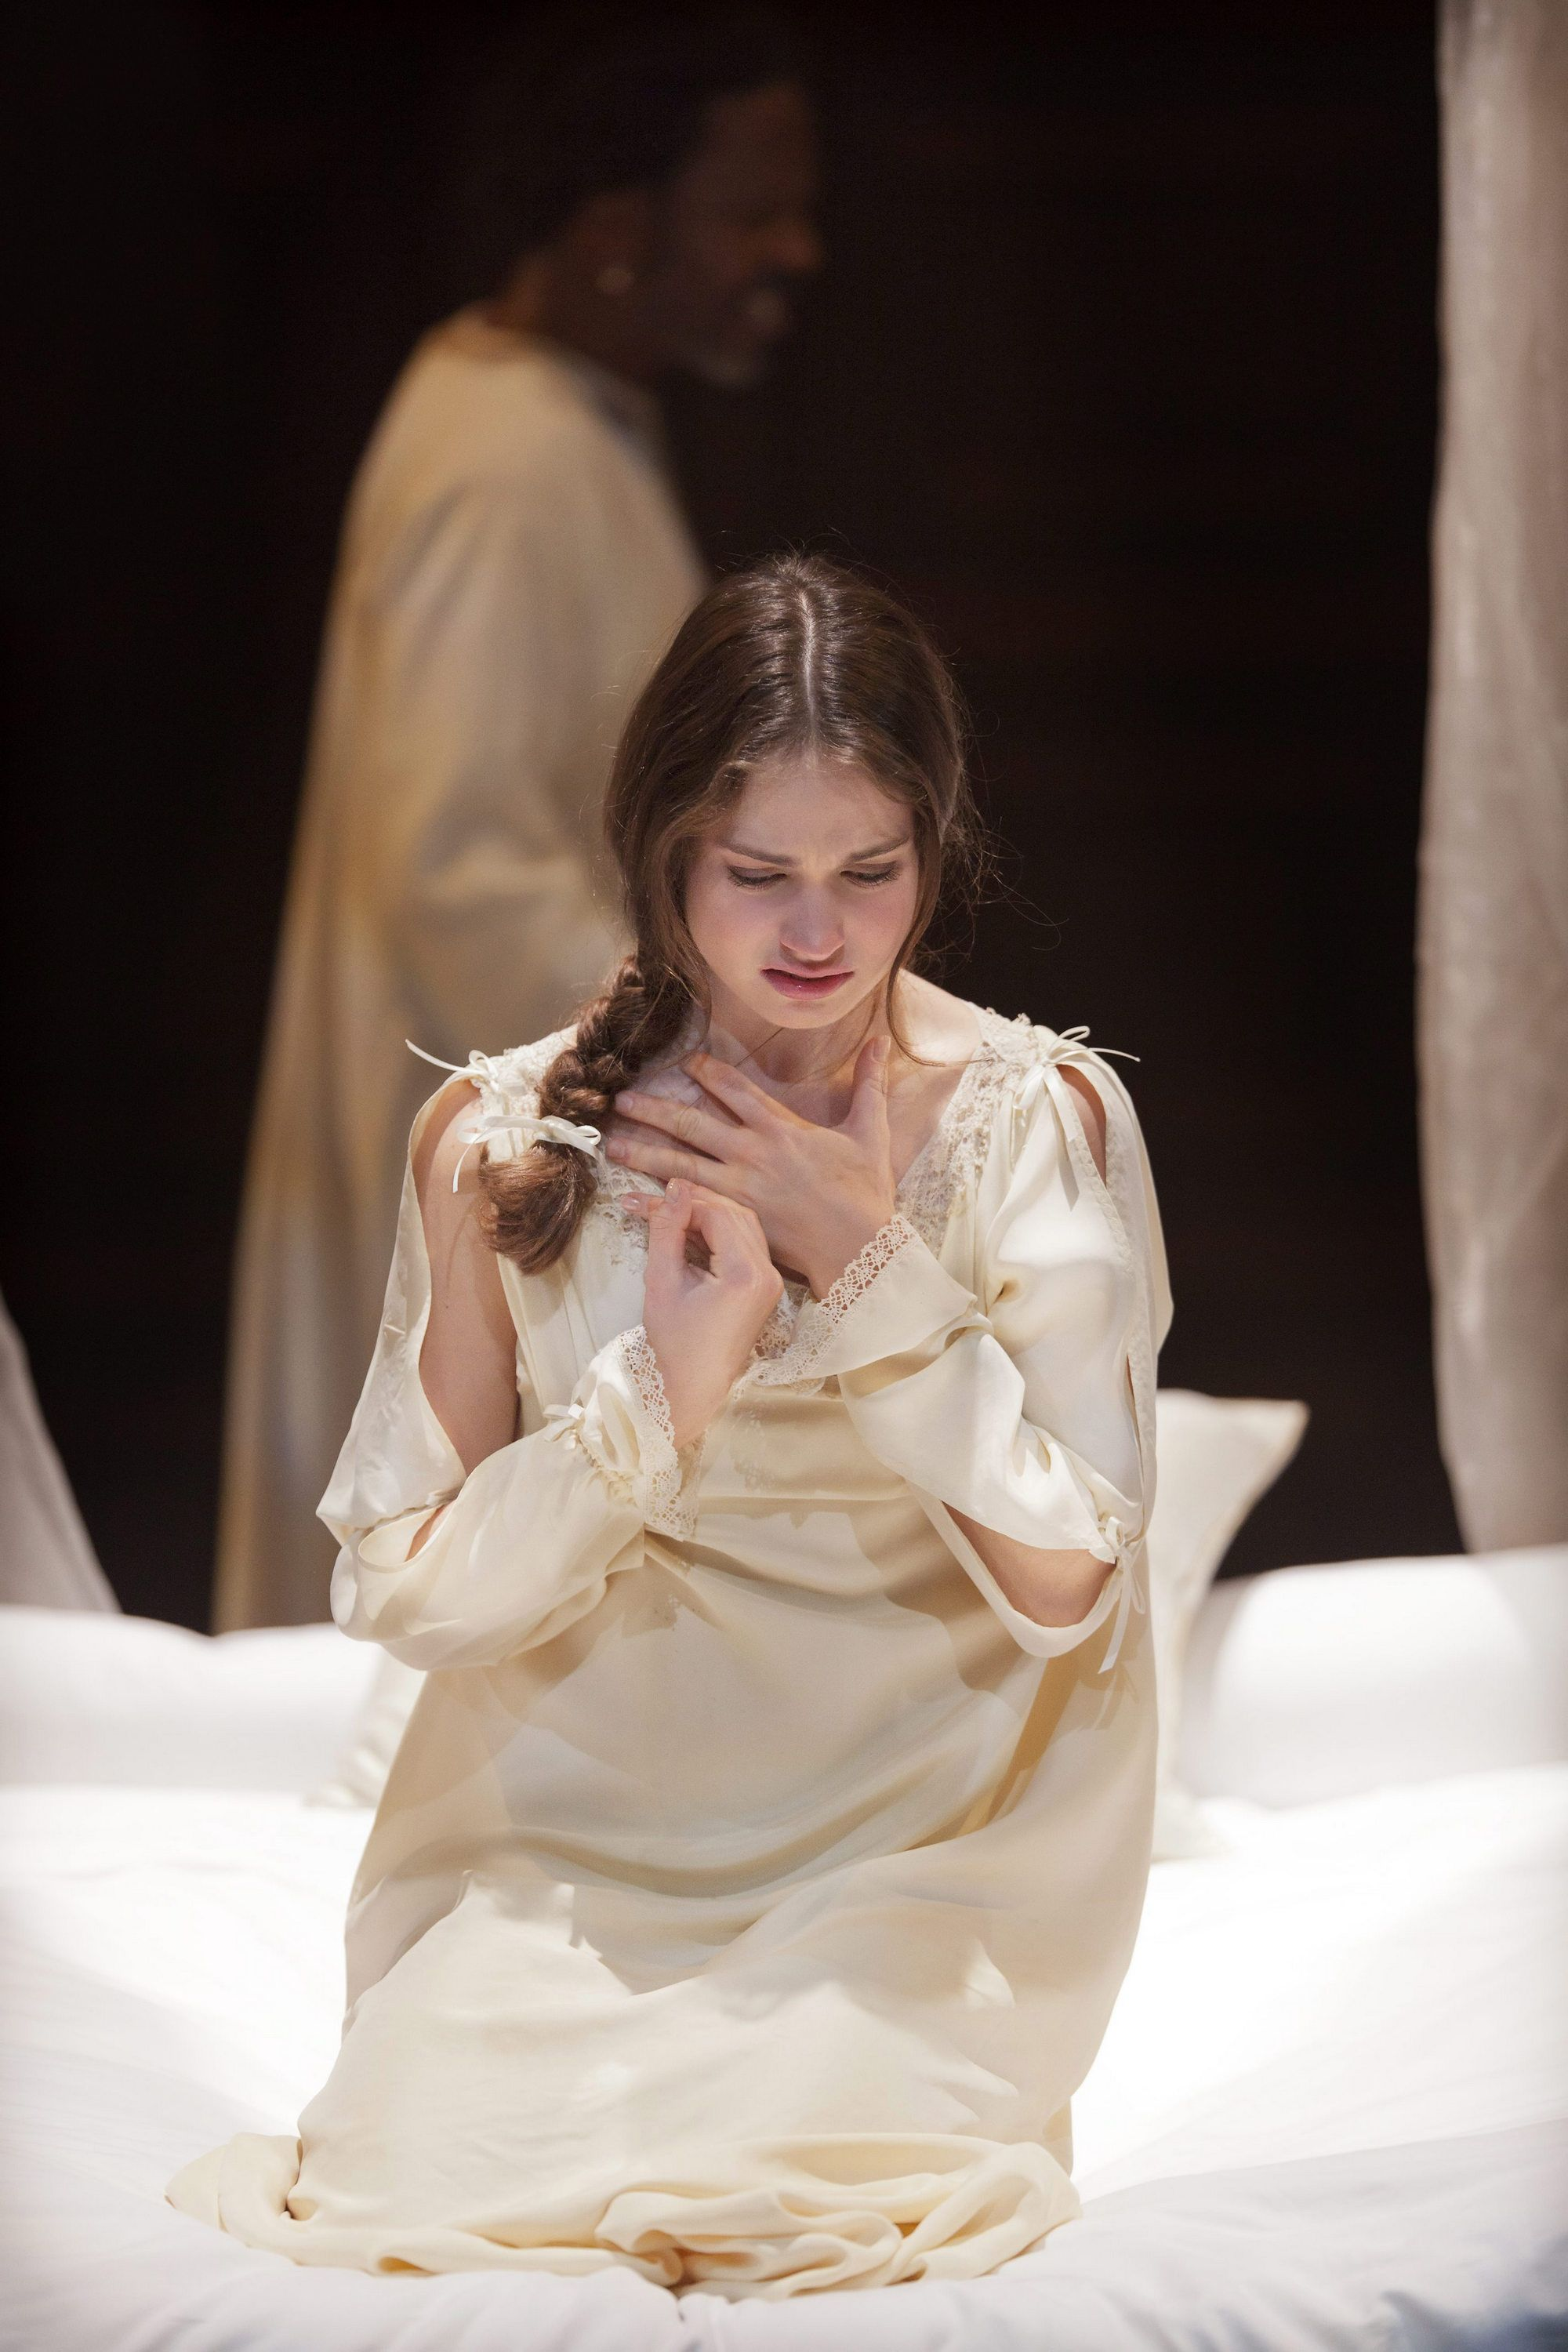 essay on emilia in othello In shakespeare's othello, emilia plays a crucial role in the taking down of othello emilia is iago's wife, and throughout the plays she seeks iago's love and.